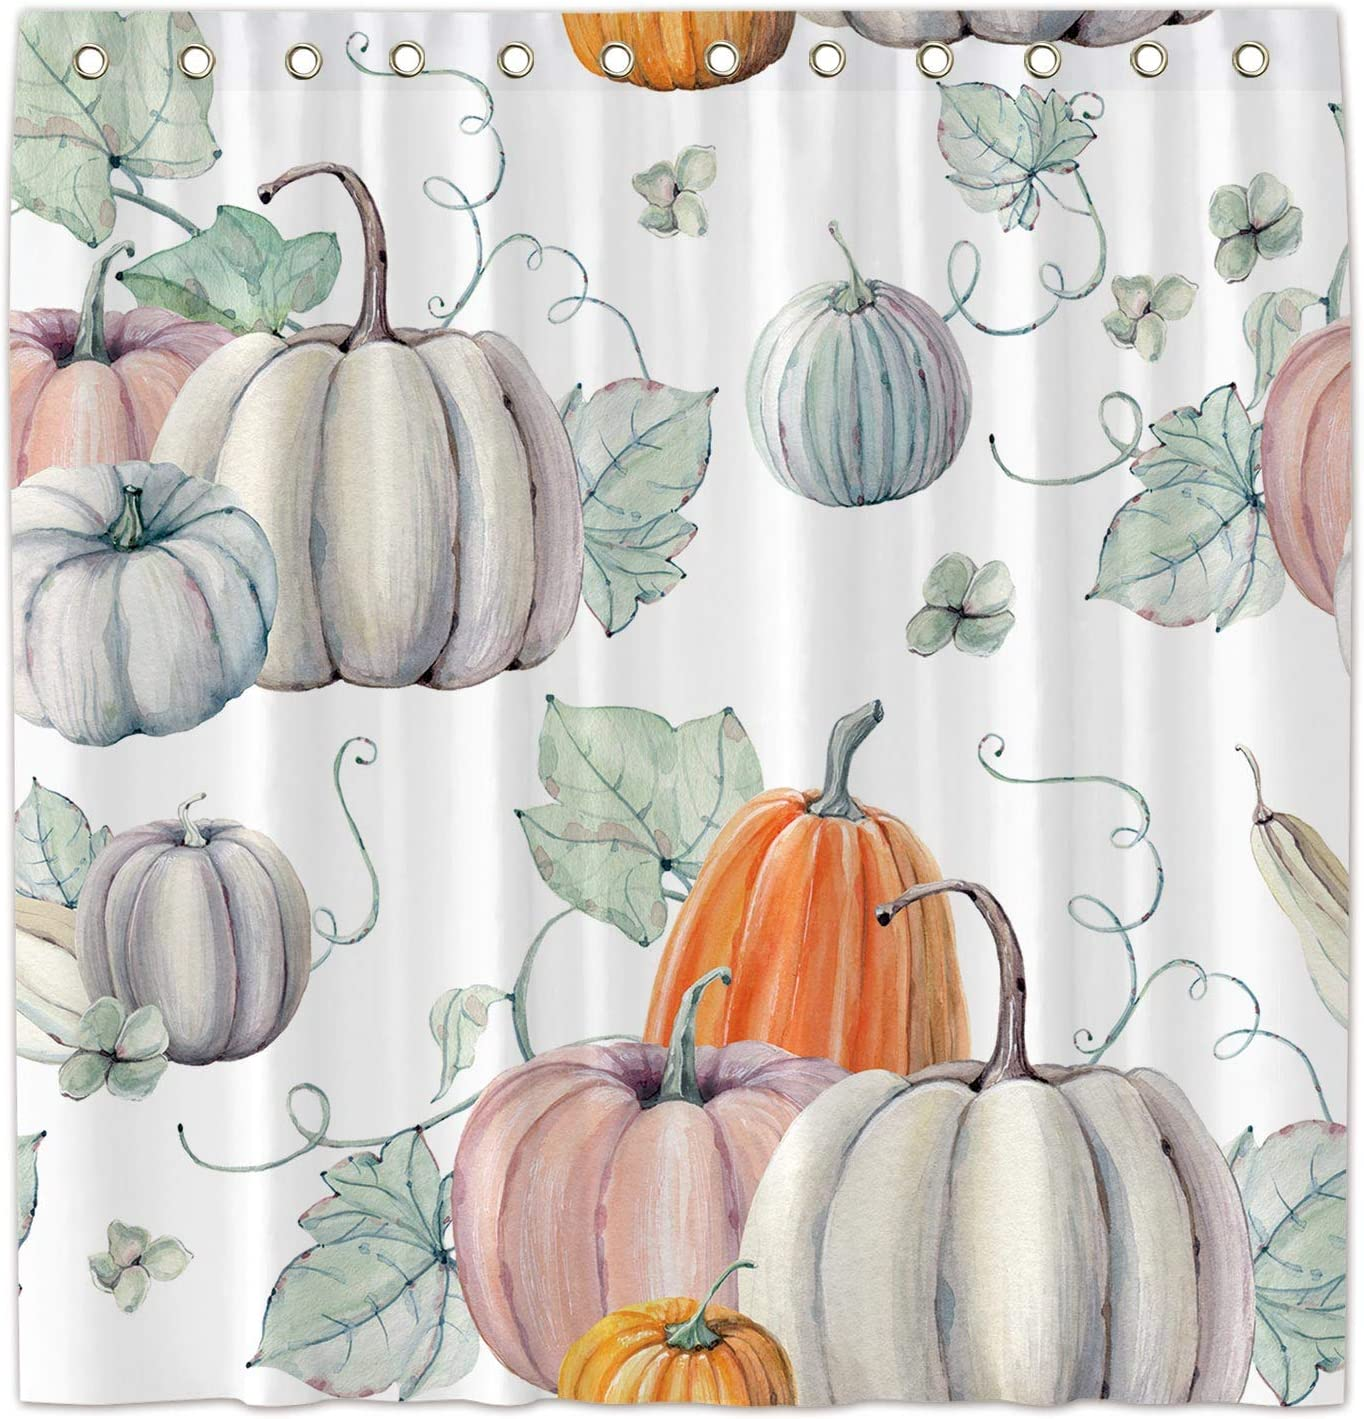 Allenjoy 72x72 Inch Watercolor Pumpkins Shower Curtain for Bathroom Sets Autumn Thanksgiving Home Bath Decor Decoration Customizable Durable Waterproof Fabric Machine Washable Curtains with 12 Hooks